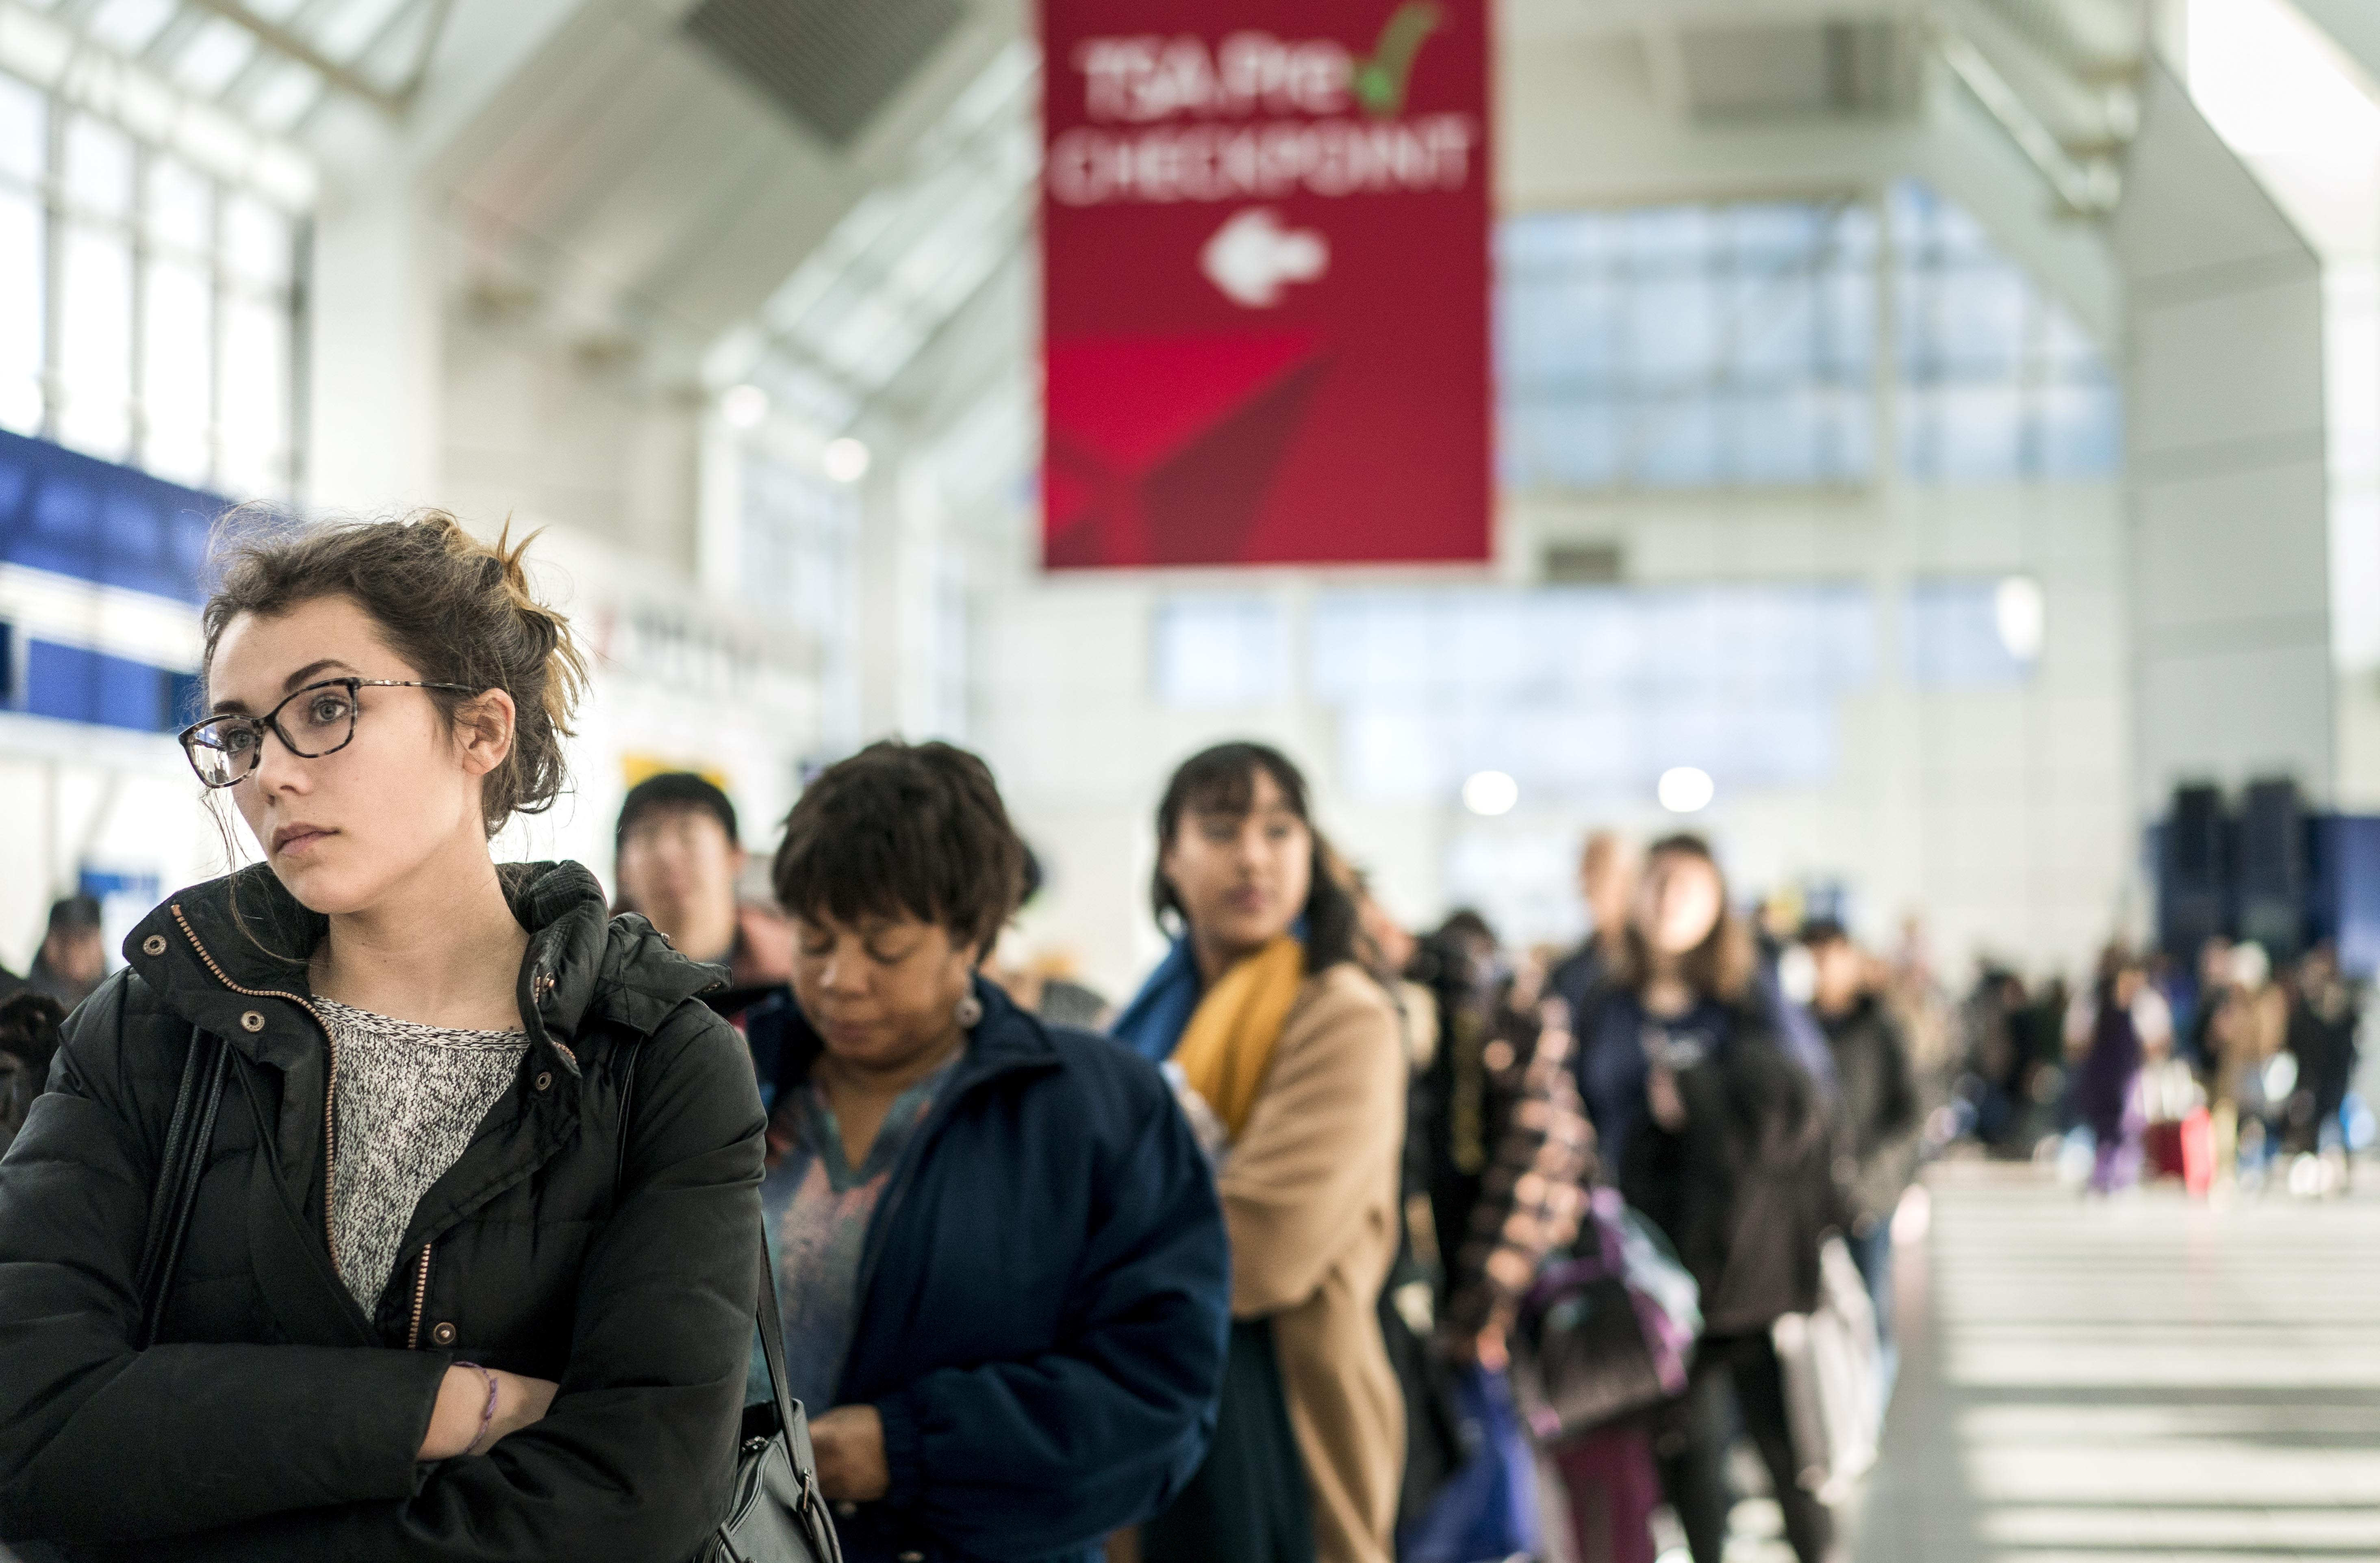 New York sues the Trump administration over denying residents access to Global Entry